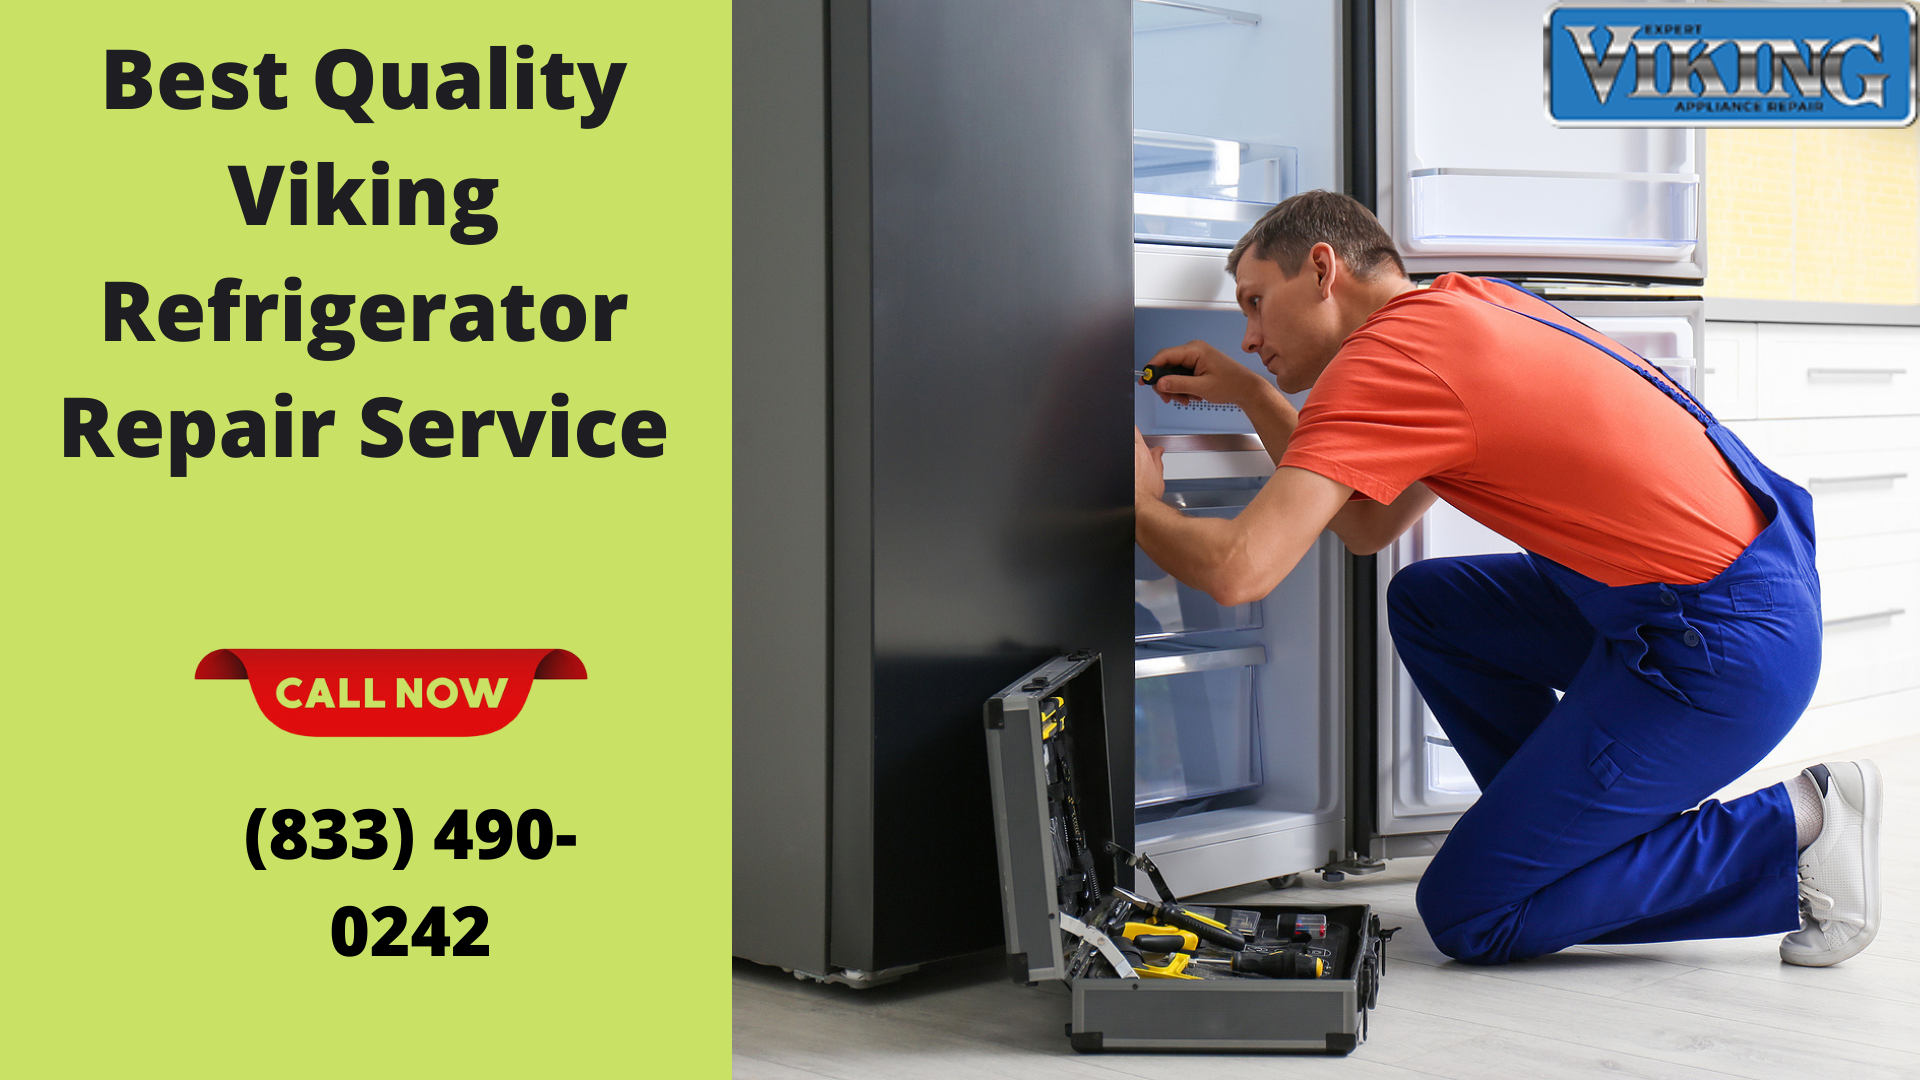 Certified Technicians for Viking Refrigerator Repair Service